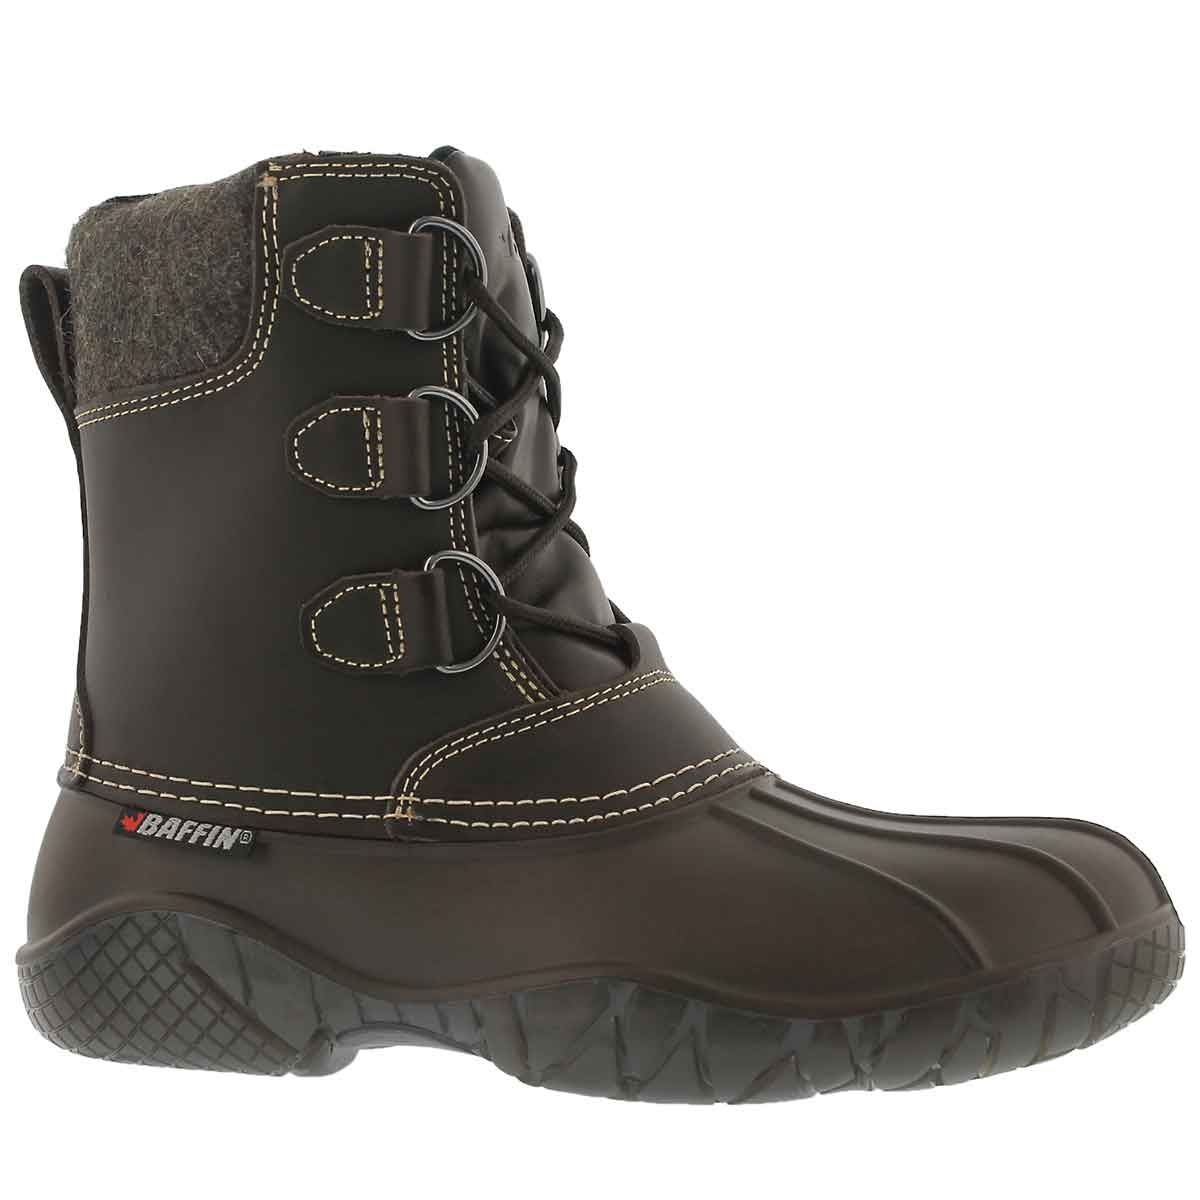 Lds Superior brown lace up rain boot